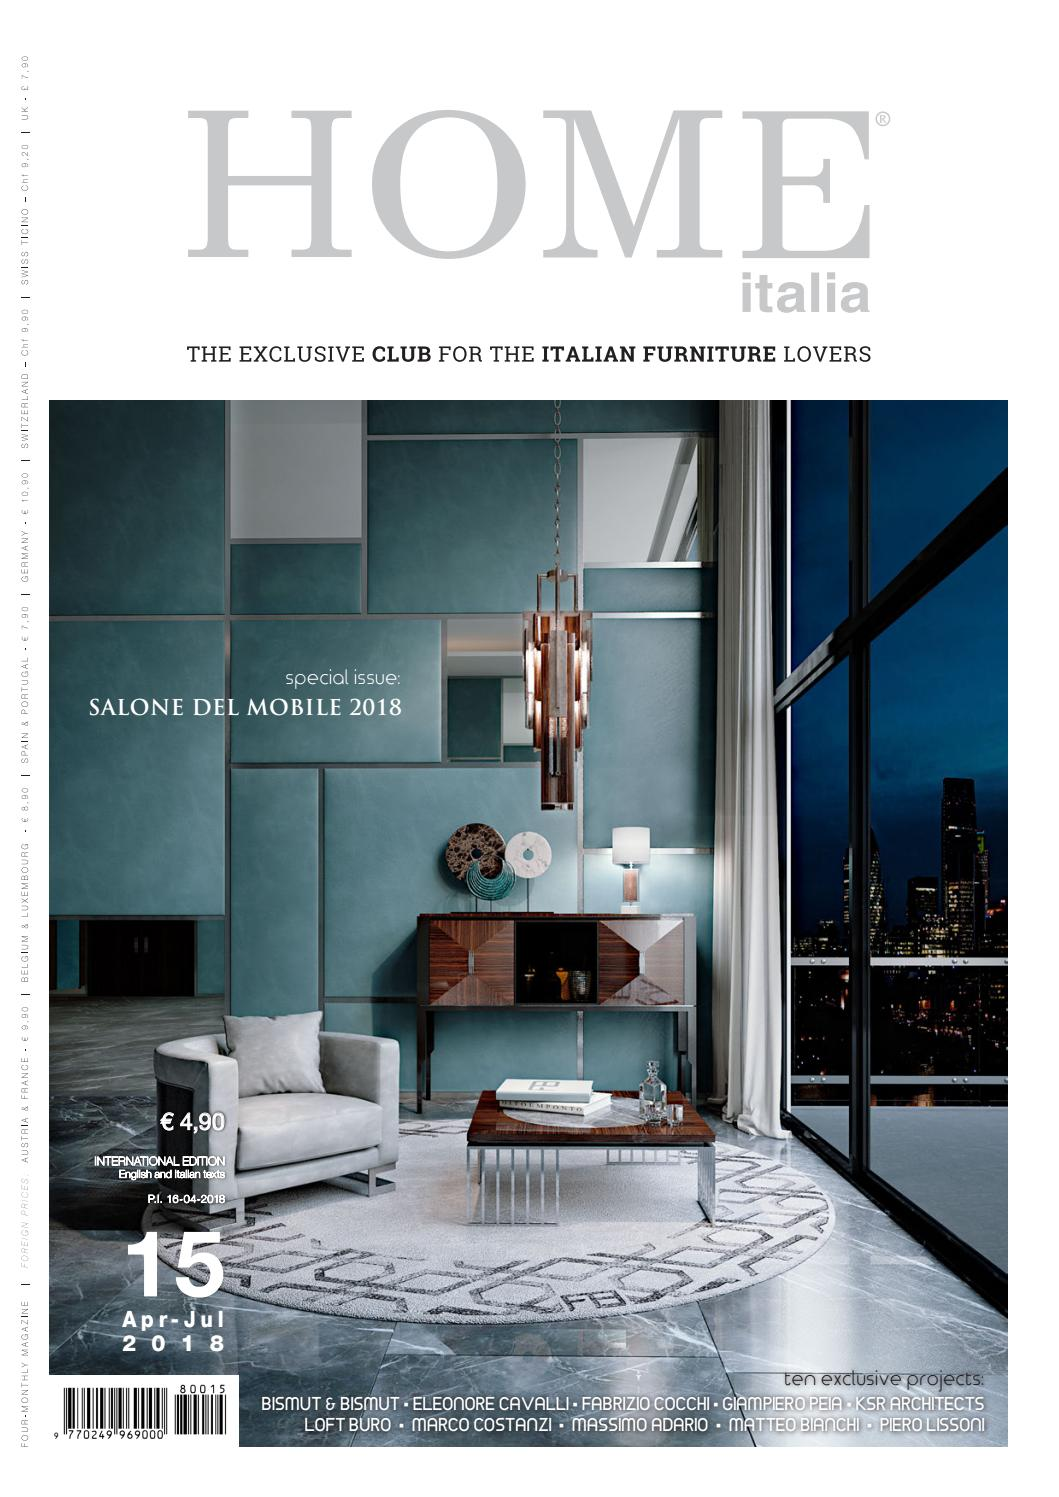 Idea Camino Borgosatollo Orari home italia 15th edition by home italia - issuu